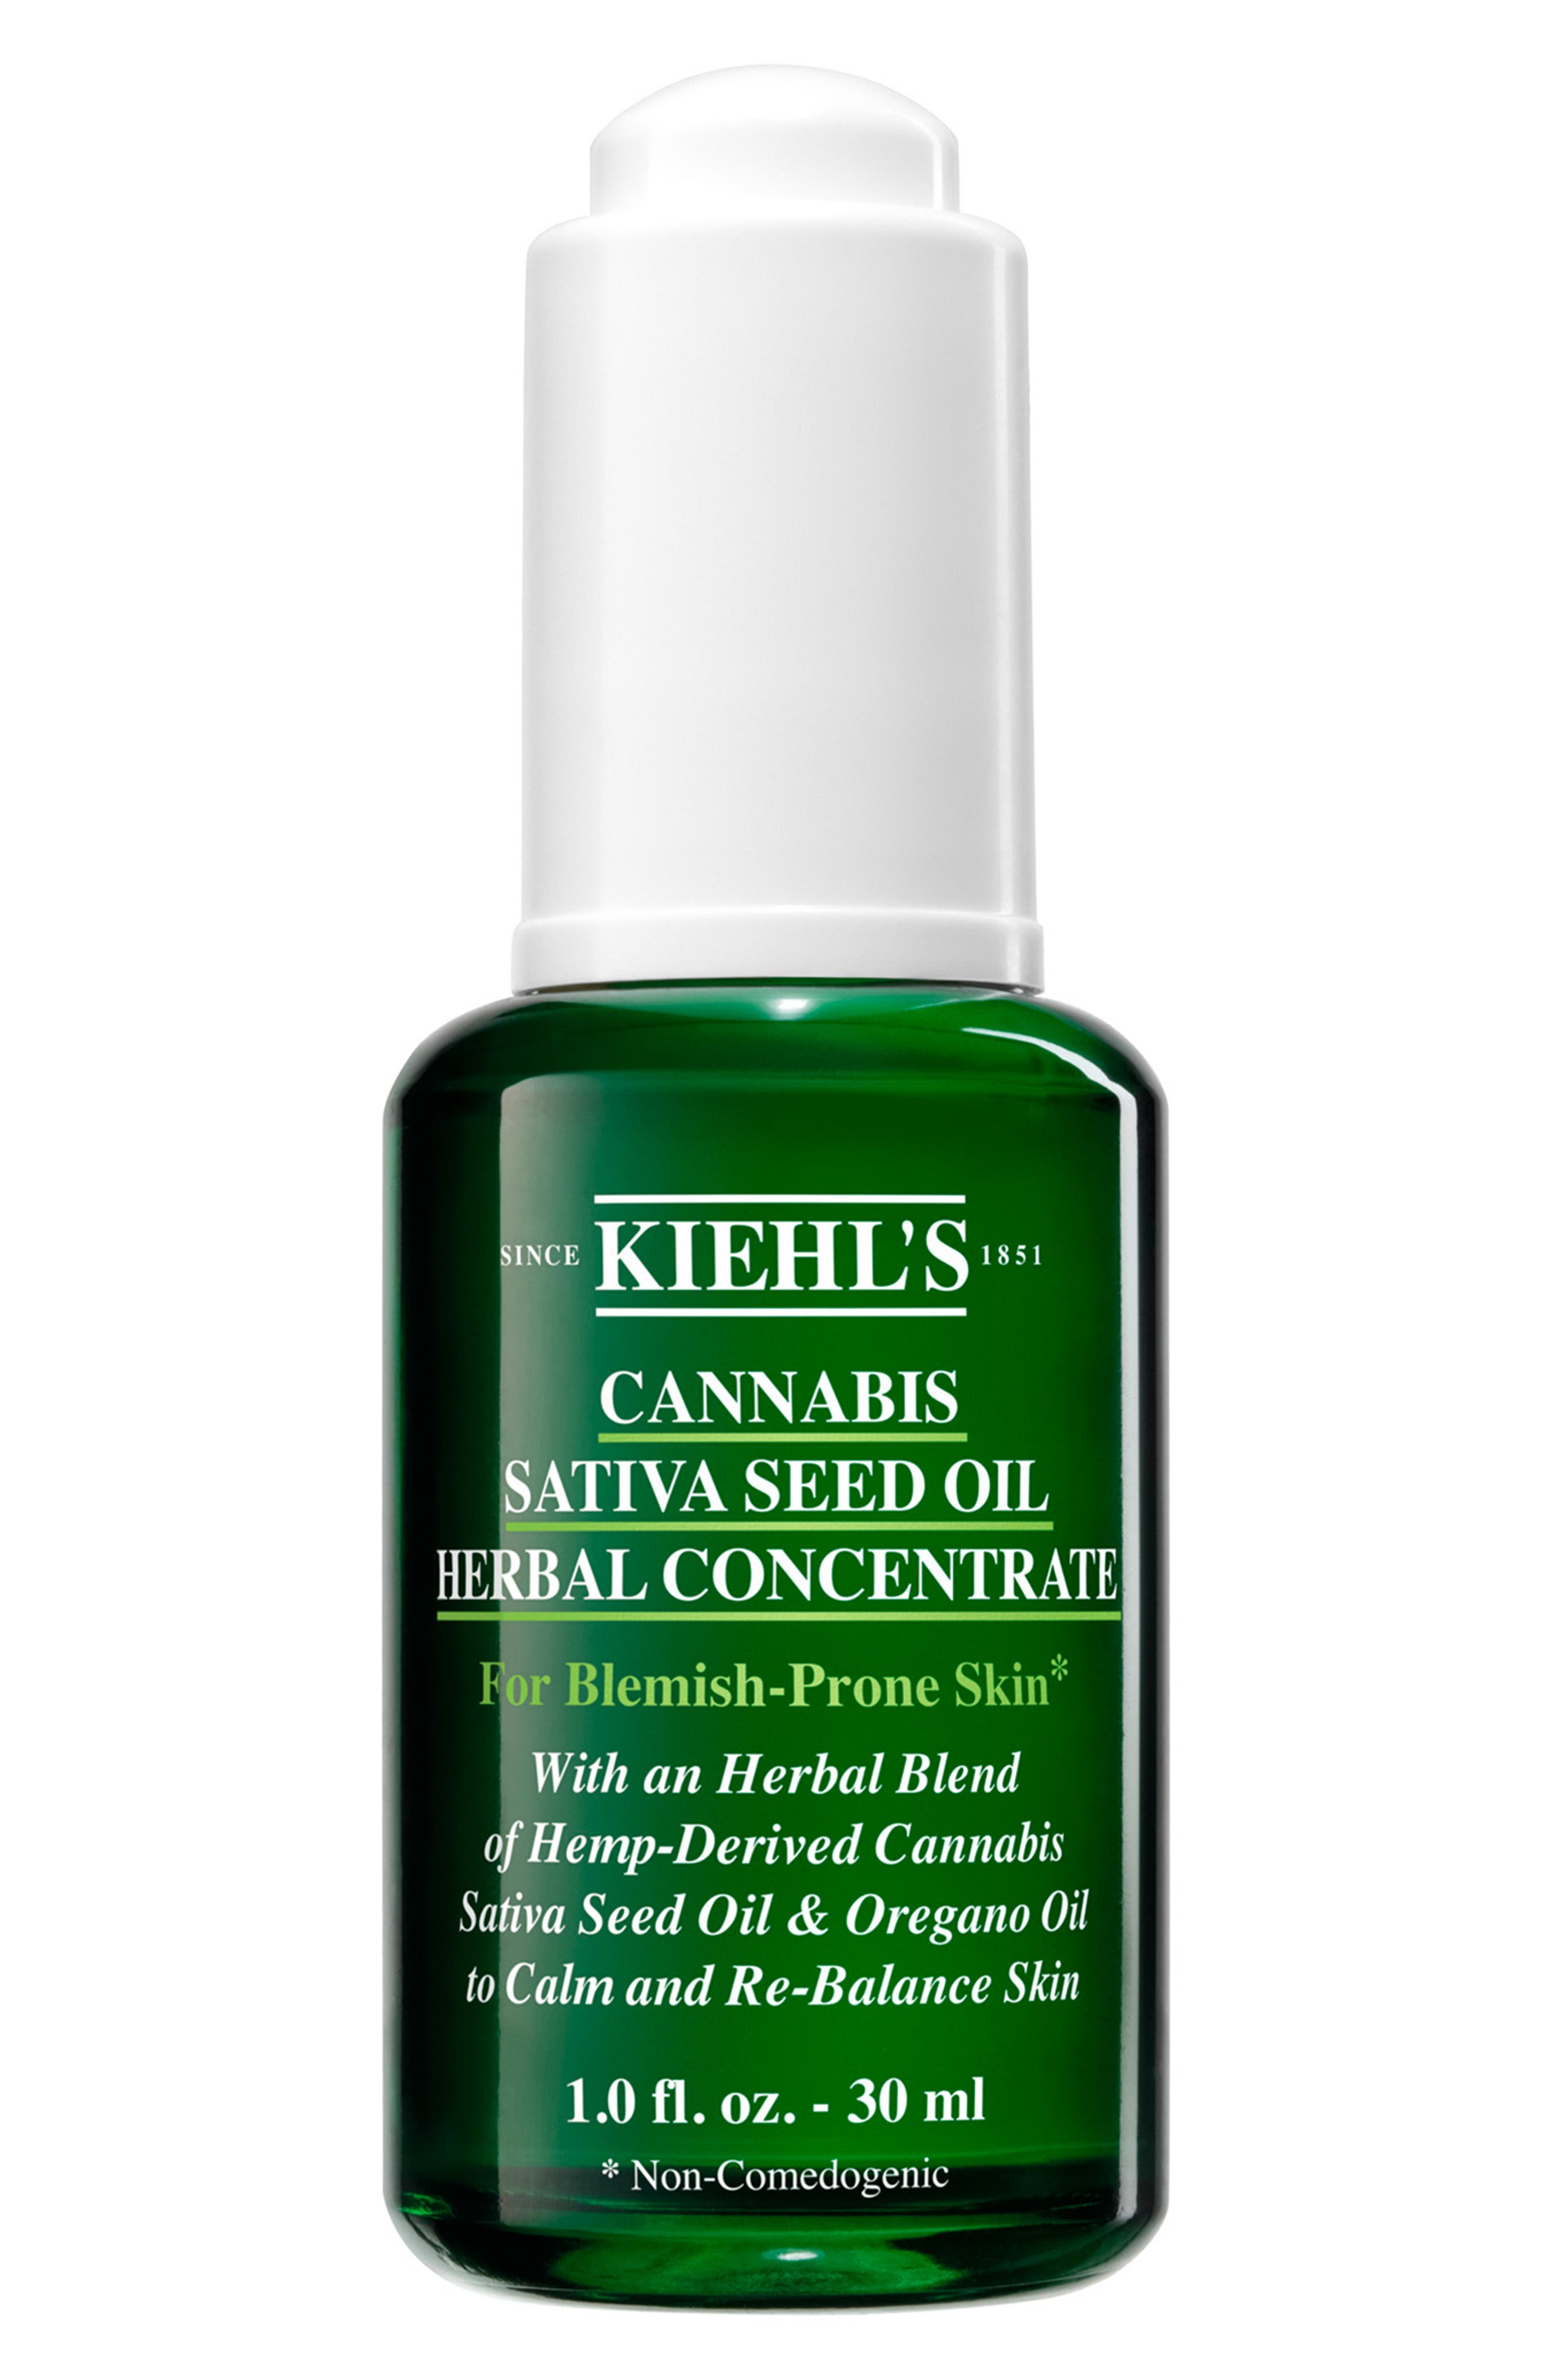 1851 Cannabis Sativa Seed Oil Herbal Concentrate Hemp-Derived